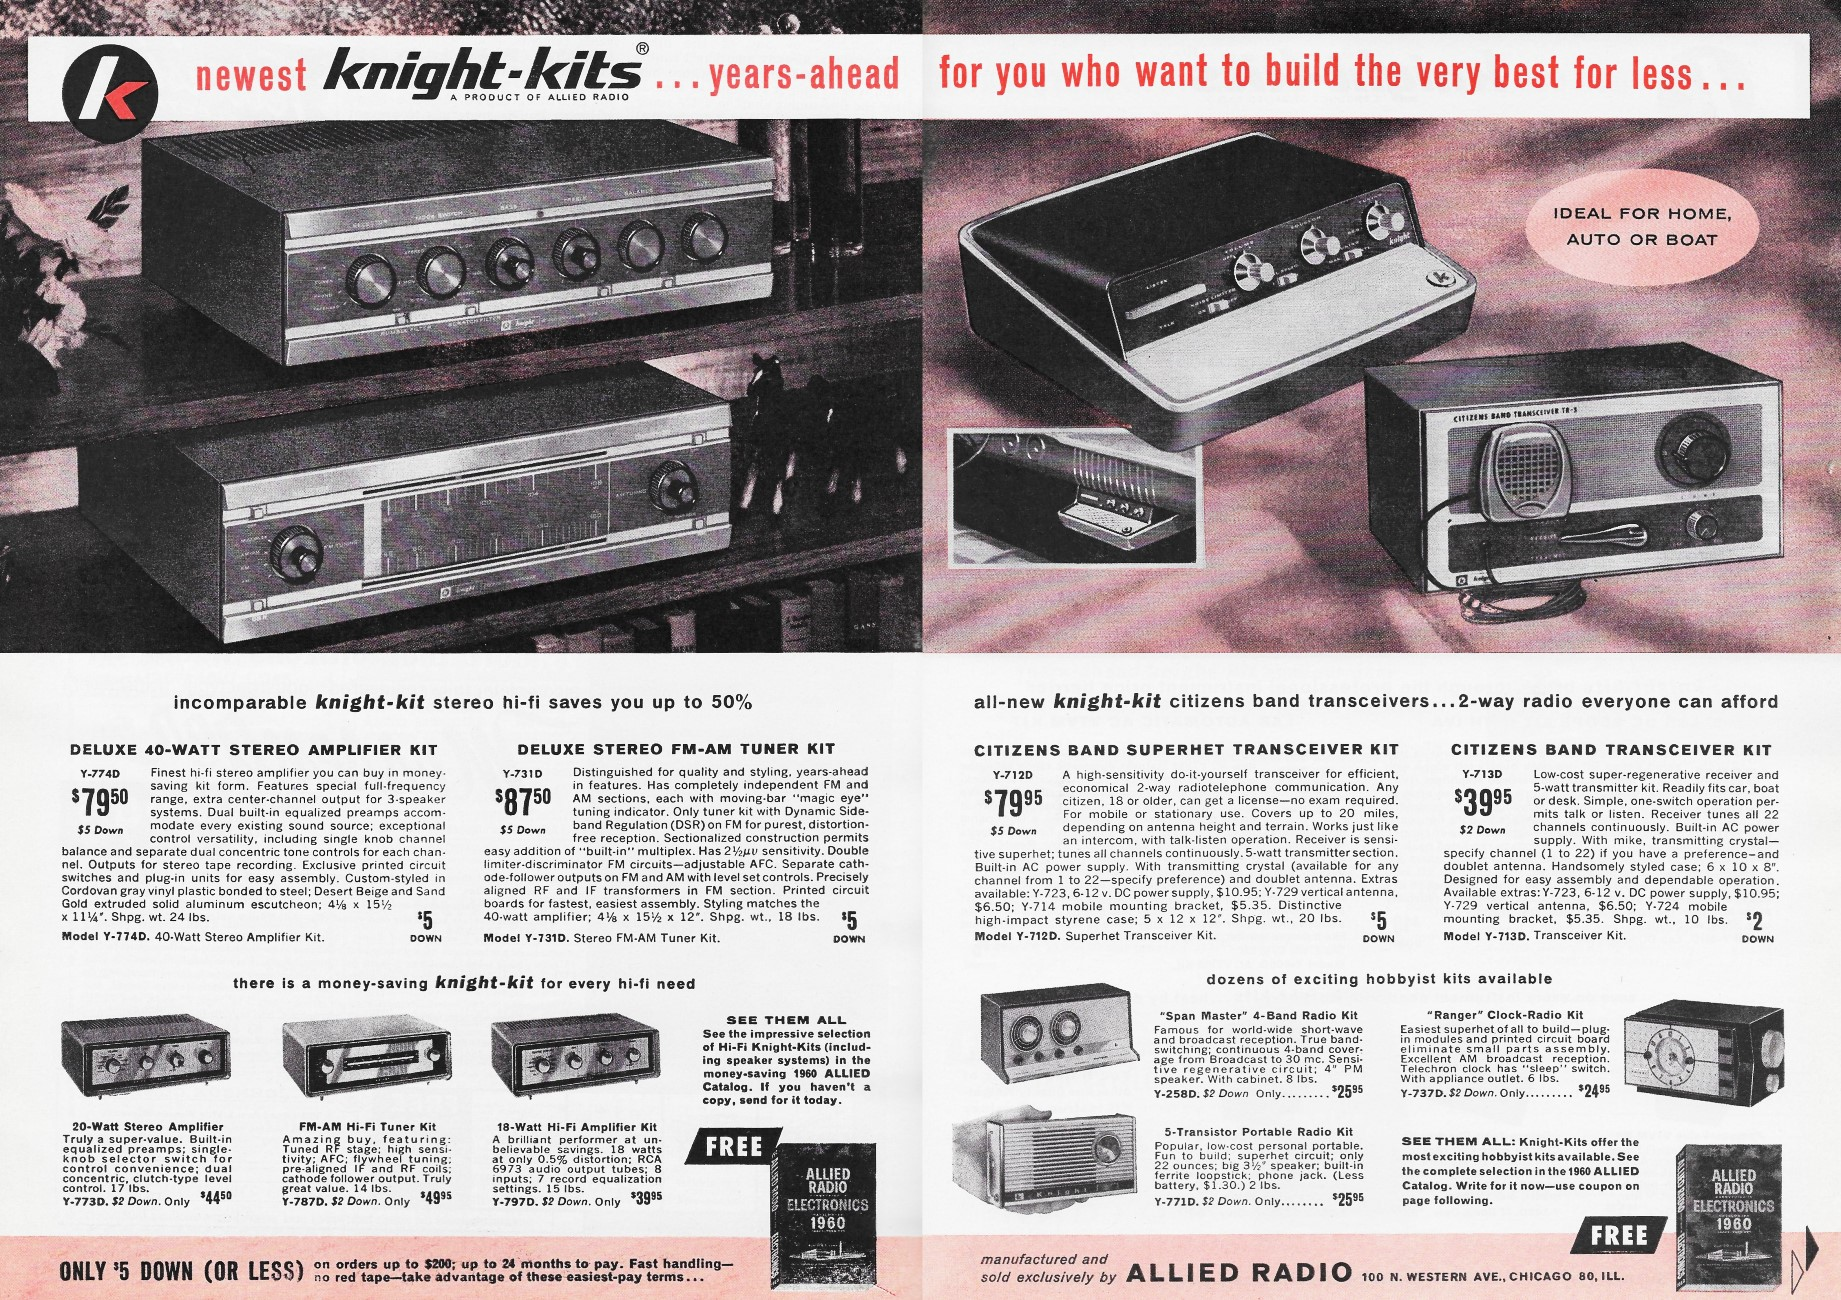 Allied Radio - Knight-Kits Advertisement, March 1960